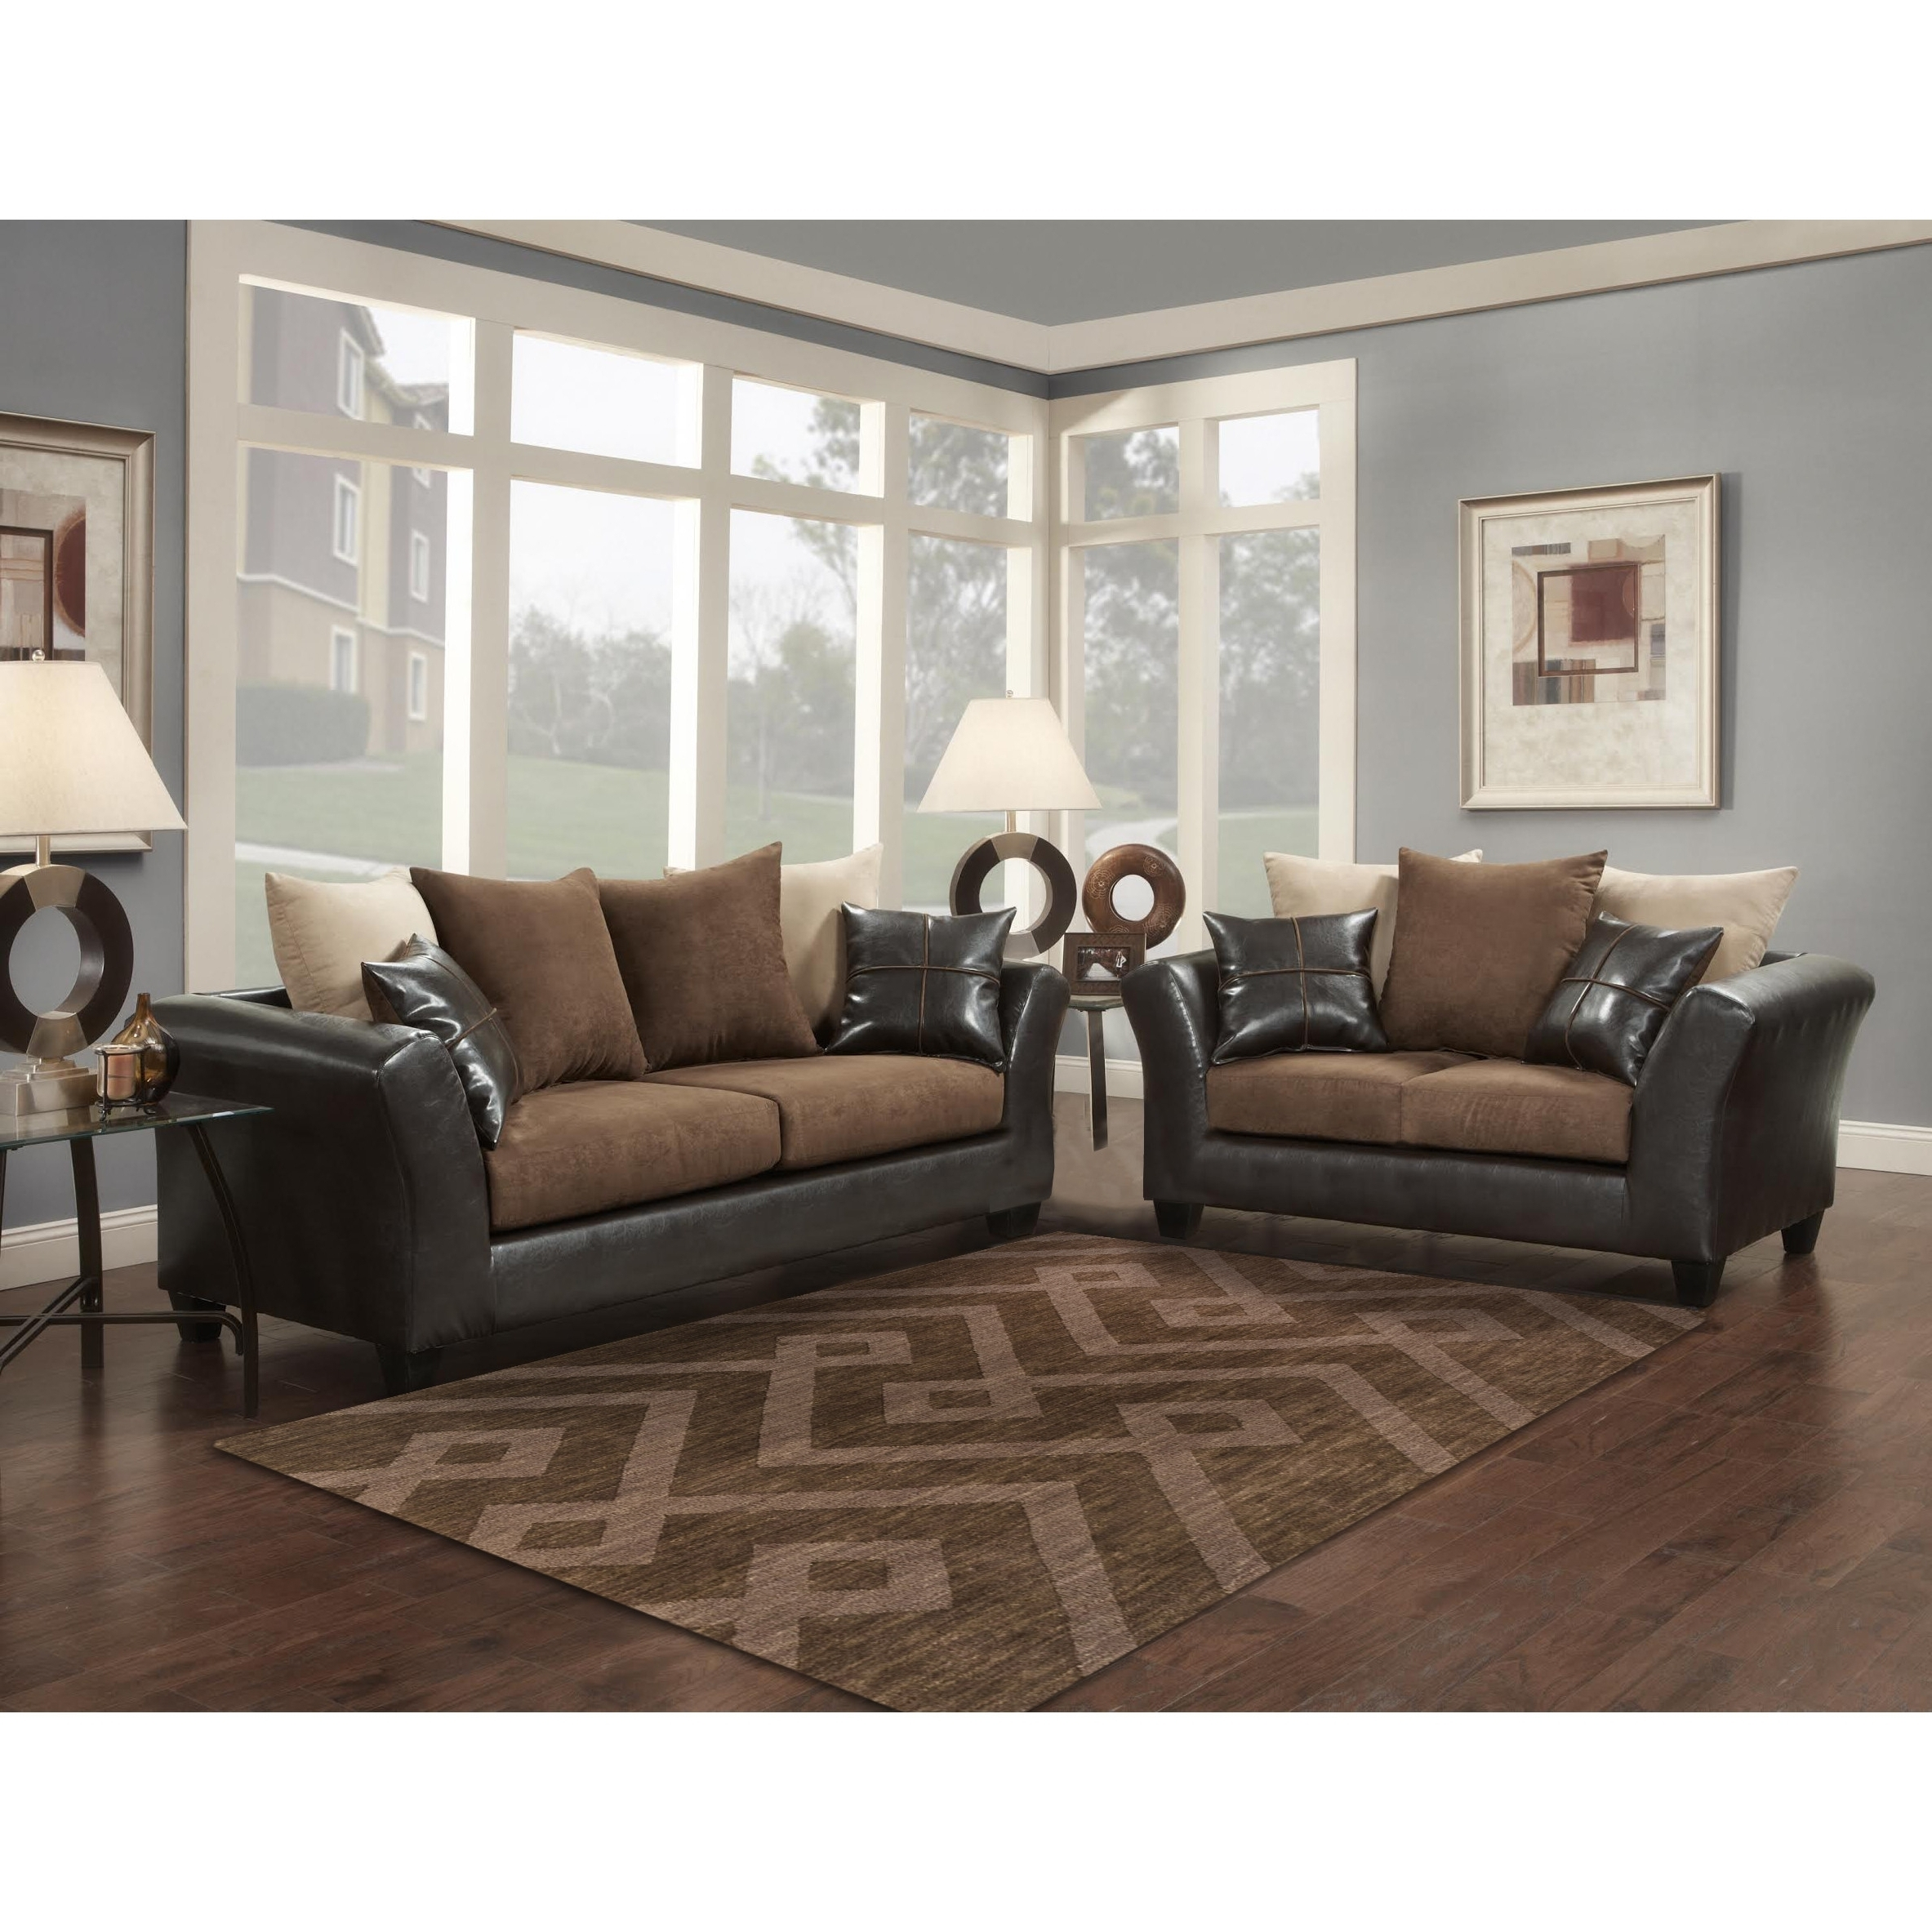 Preferred Jedd Fabric Reclining Sectional Sofas Pertaining To Sectional Sofa Fabric Sofas With Chaise Horrifying Couches Sale (View 8 of 15)